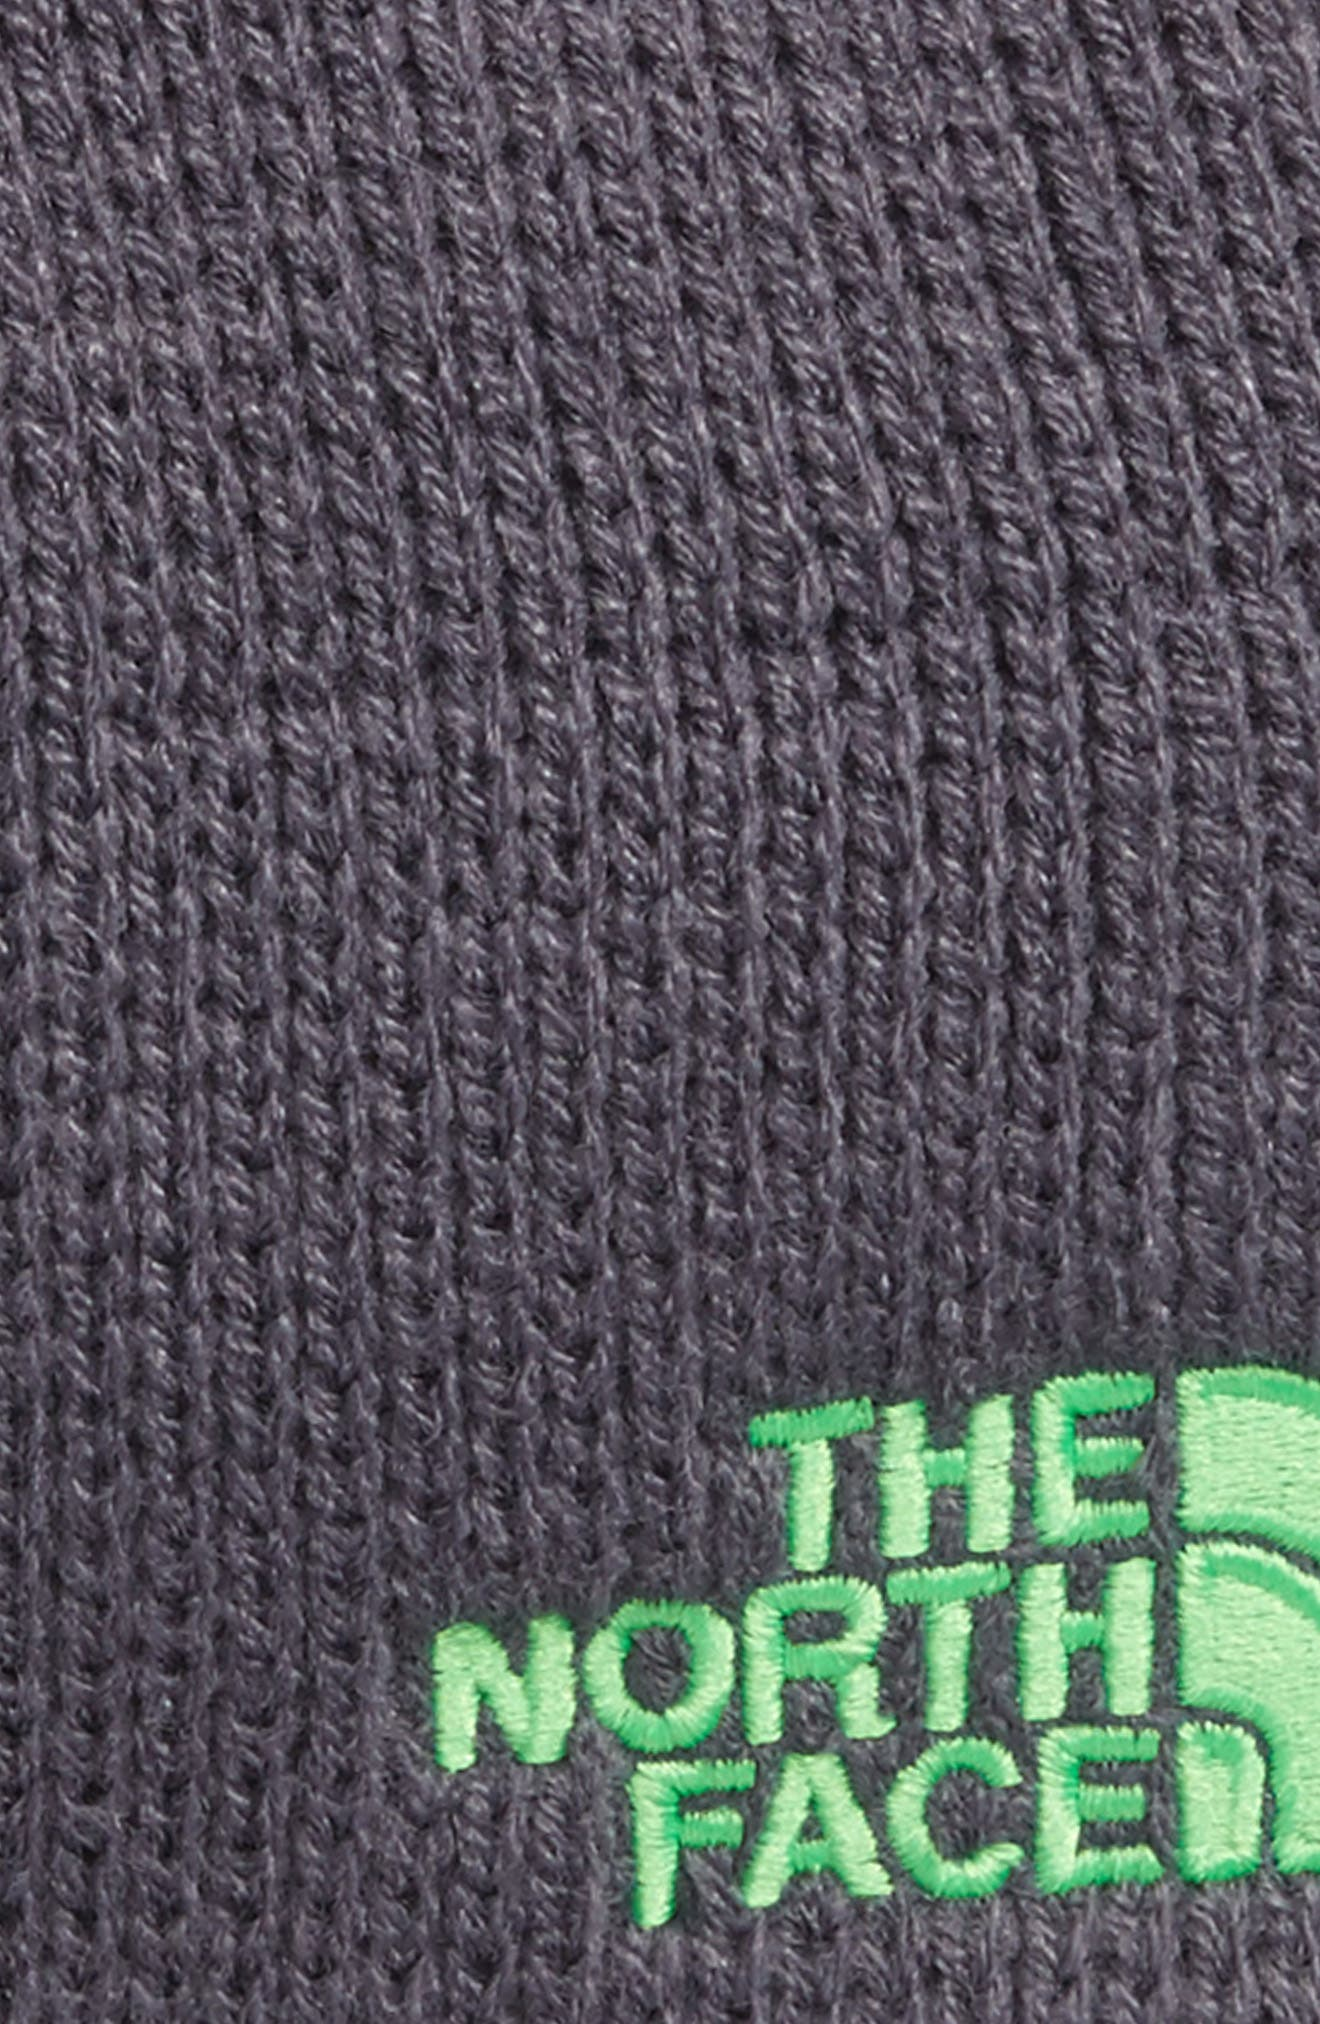 Youth Bones Fleece Lined Beanie,                             Alternate thumbnail 2, color,                             Graphite Grey/ Krypton Green